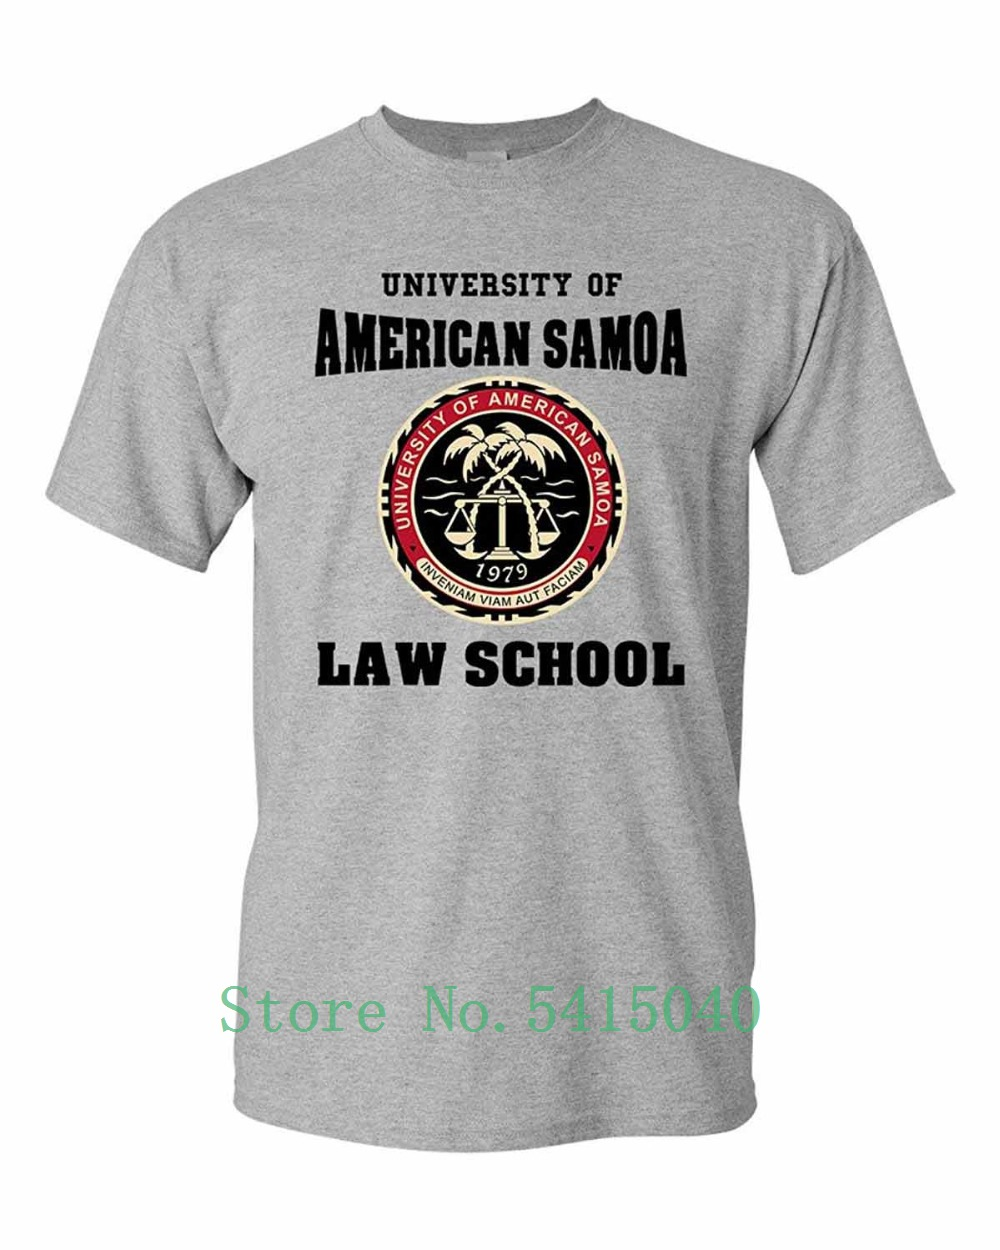 Fashion 2019 Newest Stranger Things T Shirt Men University Of American Samoa Law School Dt Adult T-Shirt Tee image